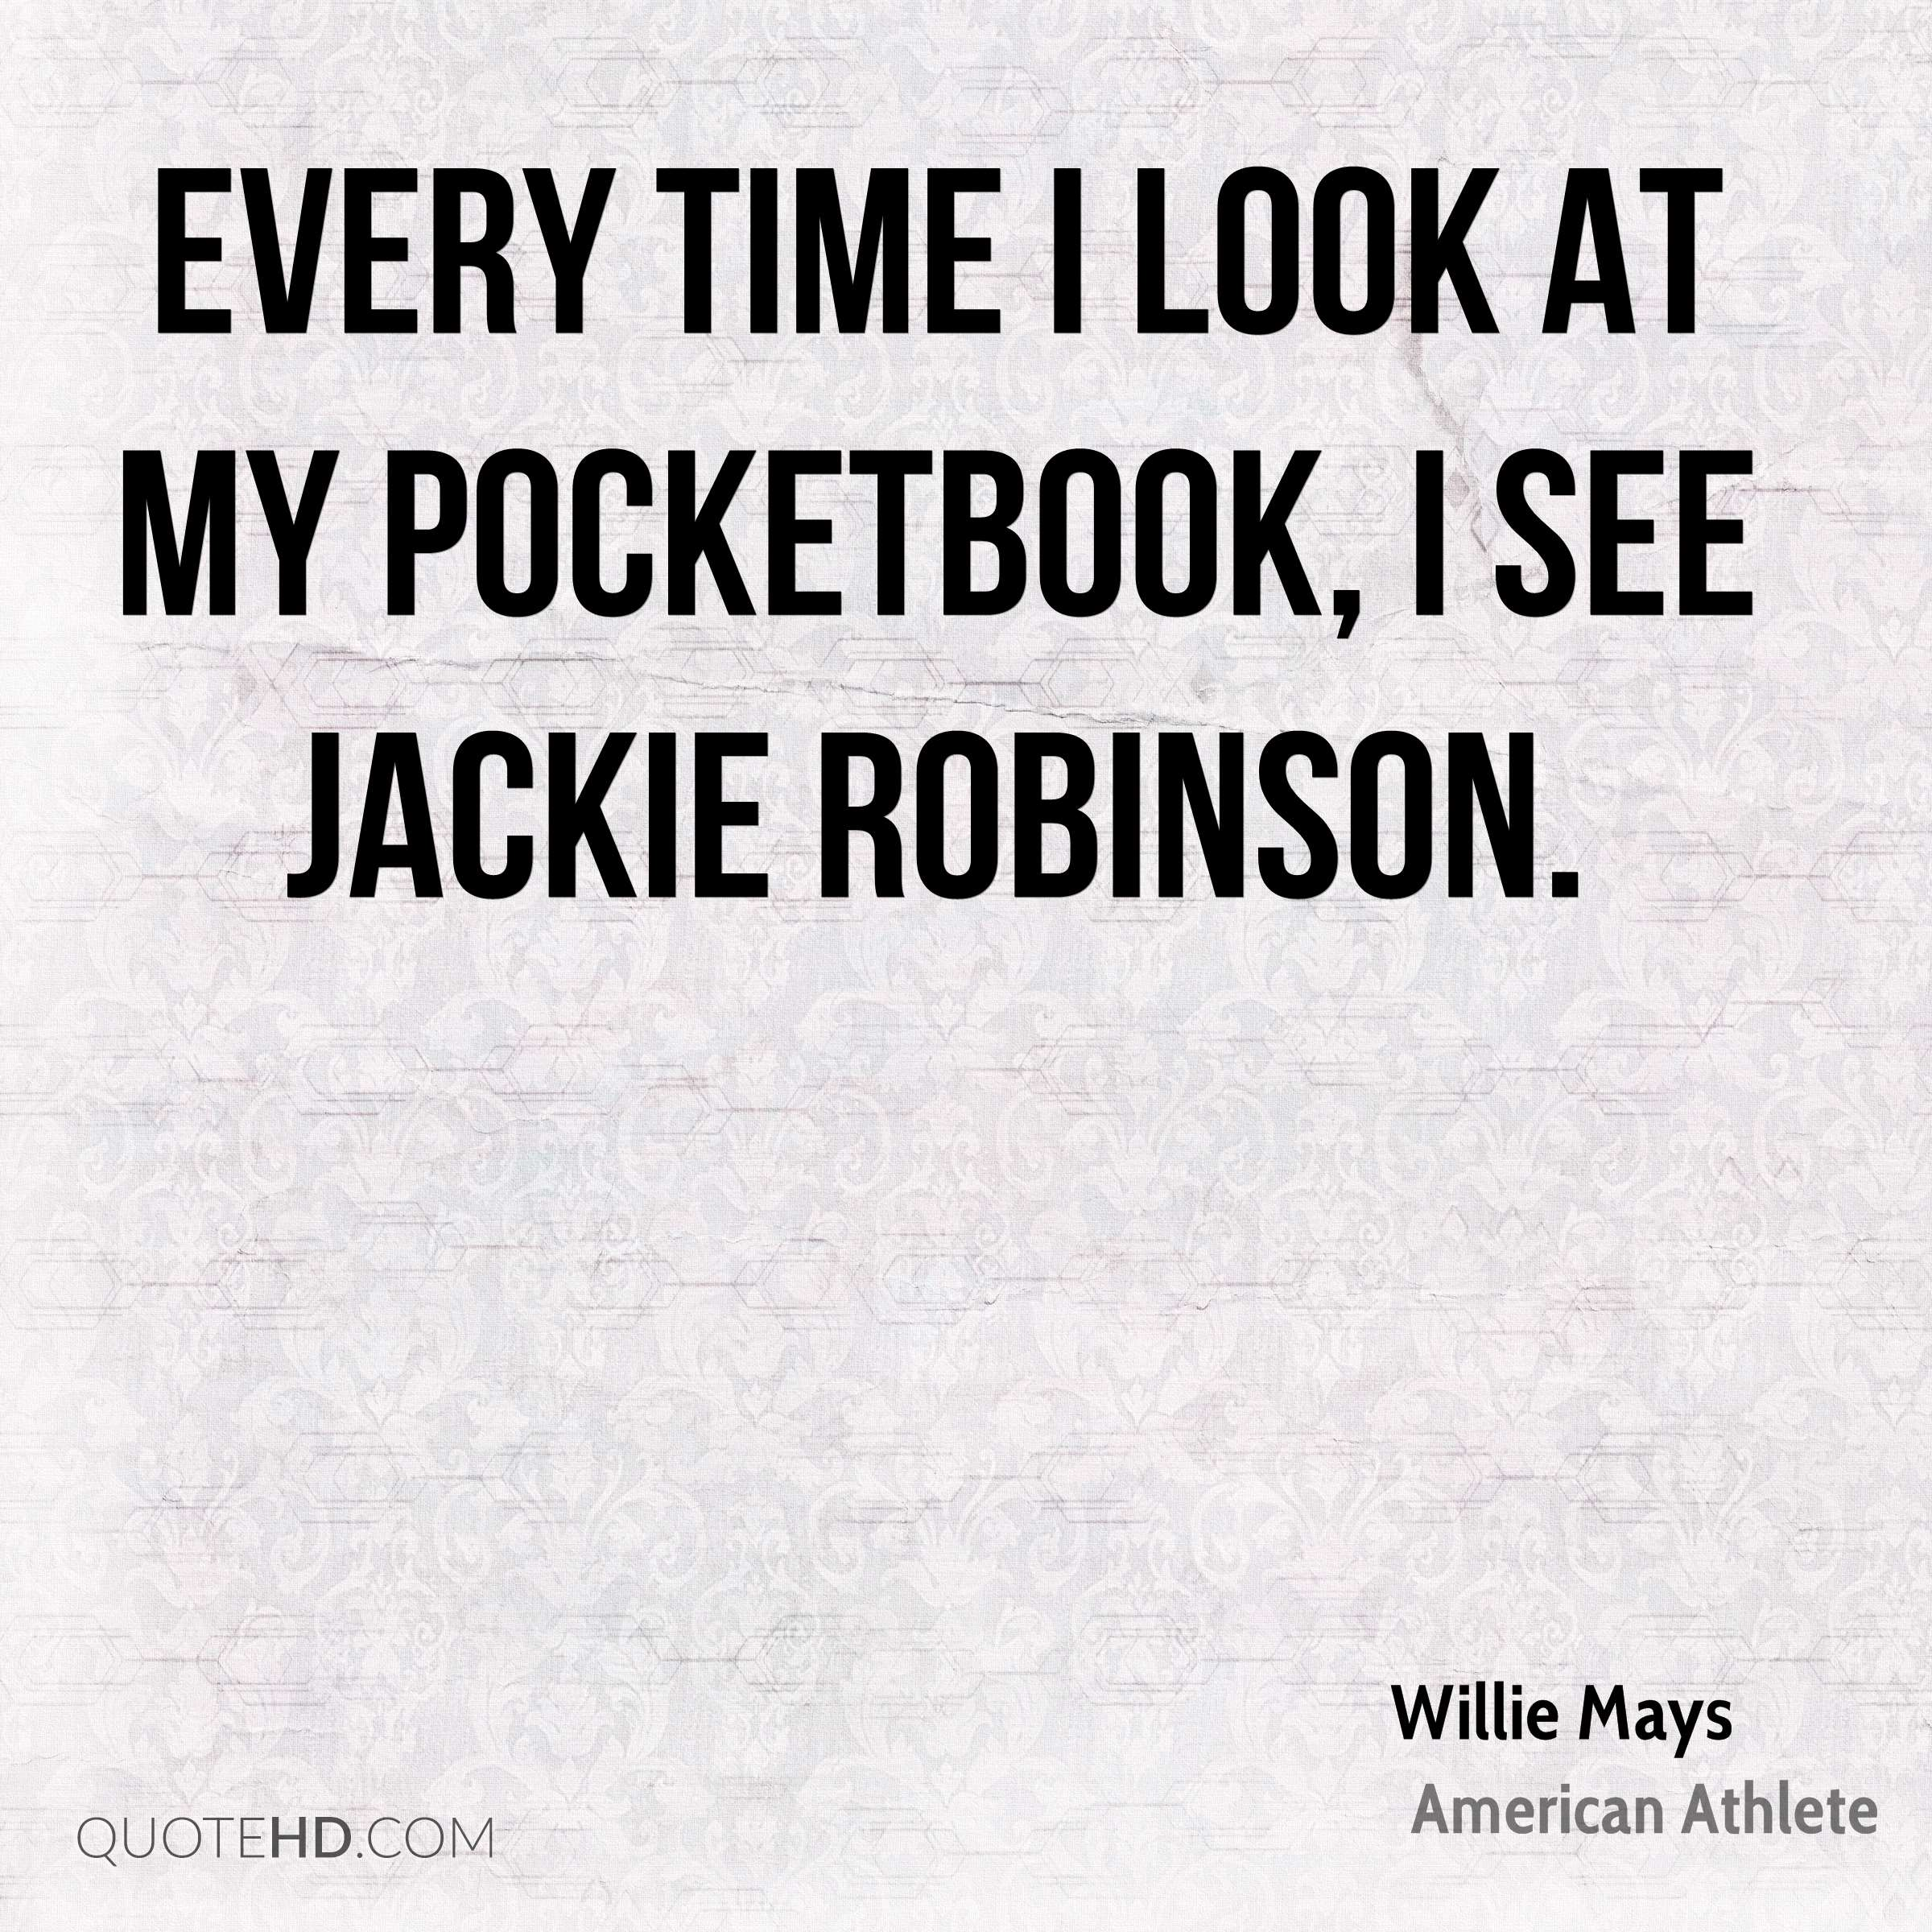 Every time I look at my pocketbook, I see Jackie Robinson.